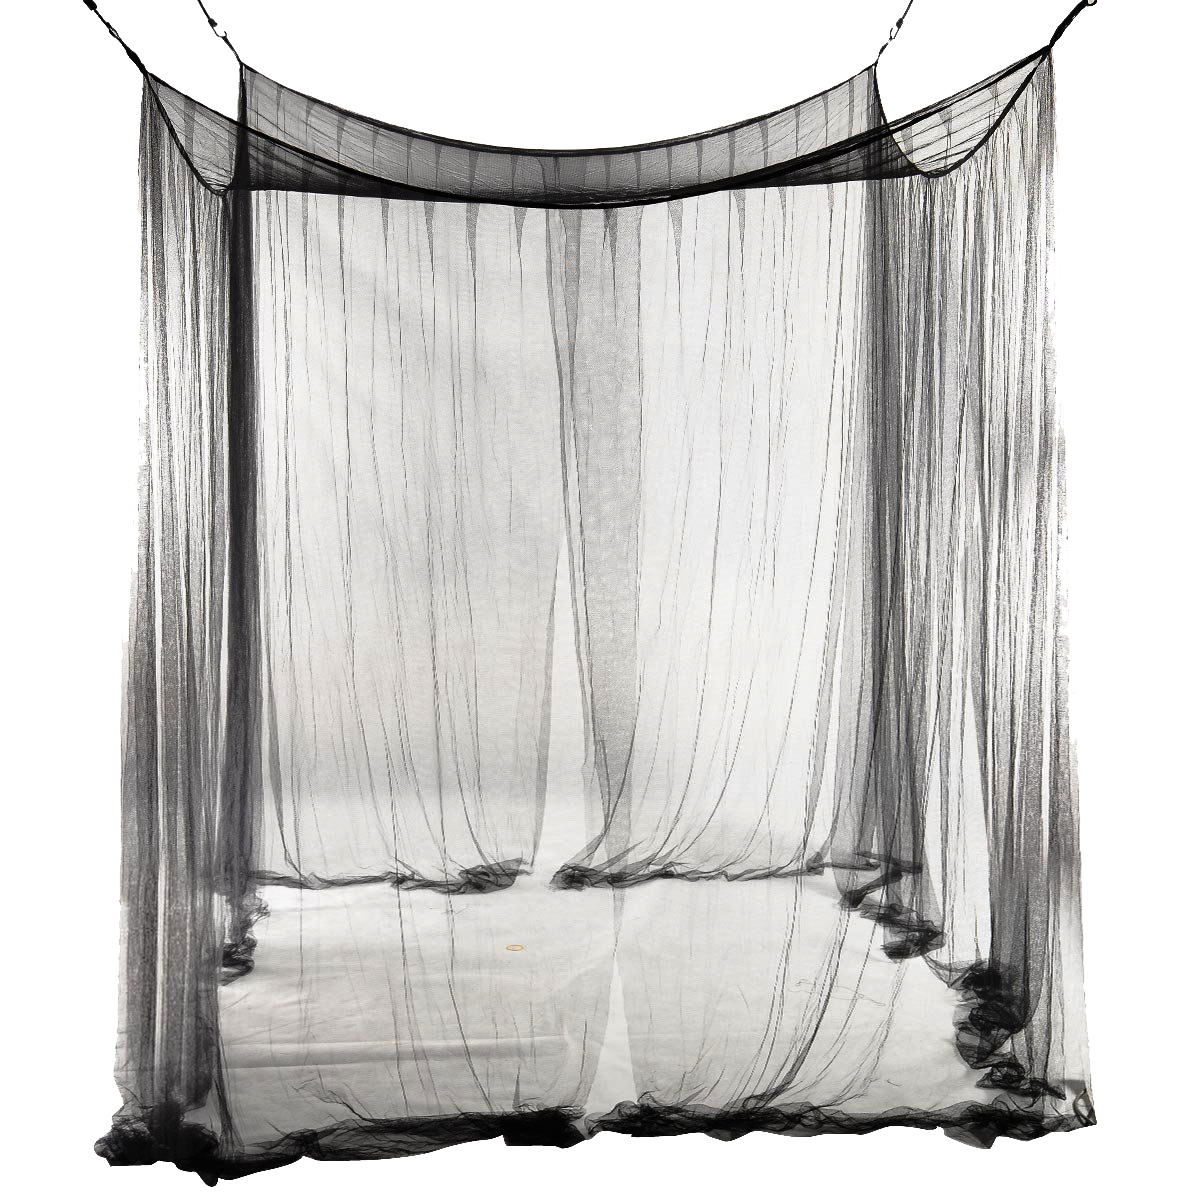 New-4-Corner Bed Netting Canopy Mosquito Net for Queen/King Sized Bed 190*210*240cm (Black)